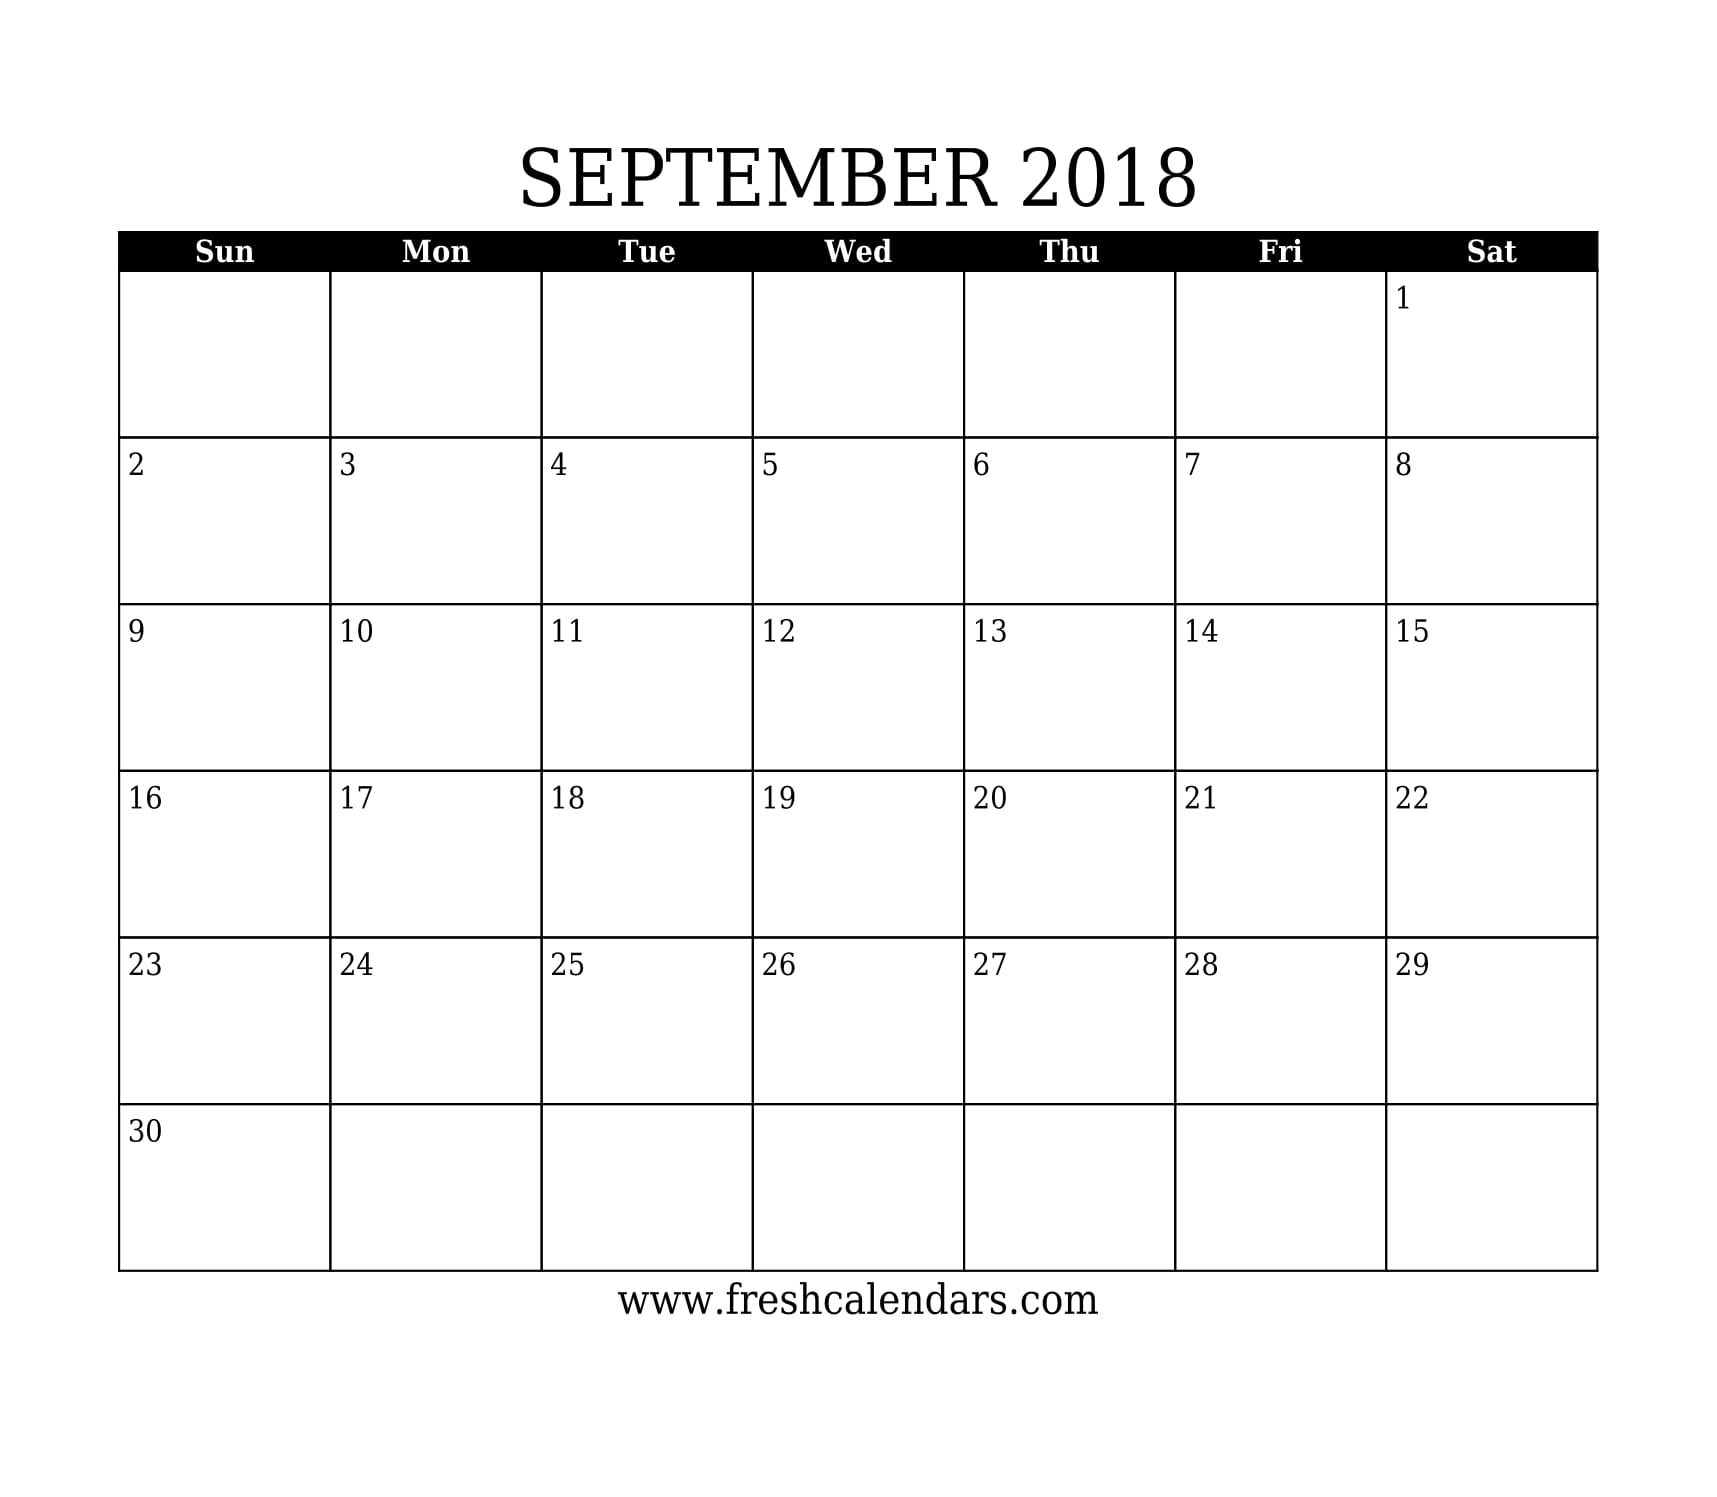 September 2018 Calendar Printable - Fresh Calendars regarding Printable Blank September Calendar